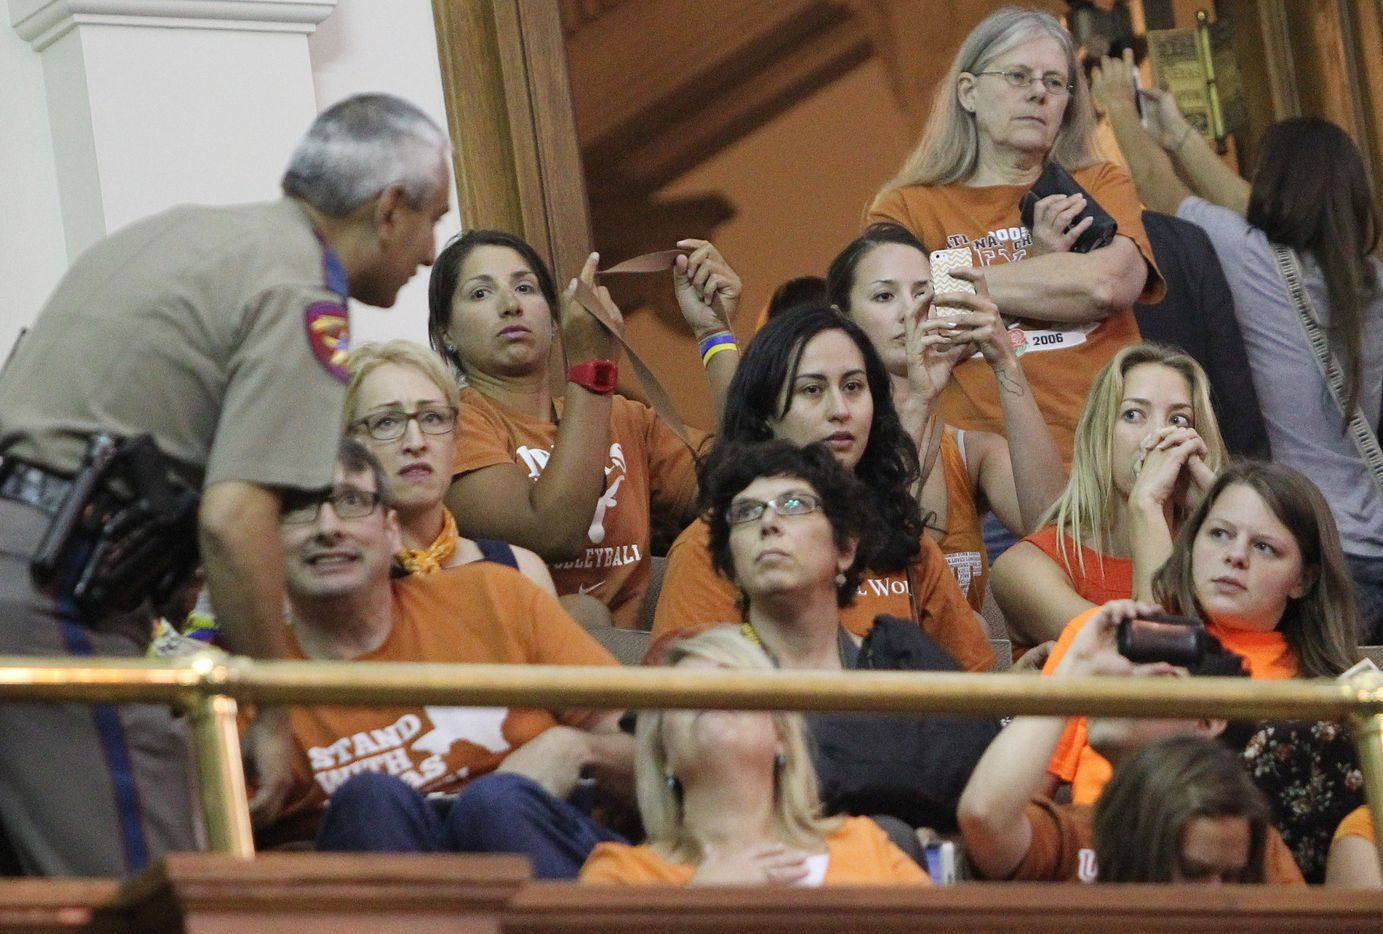 DPS officers clear out rowdy gallery members as they react after a third point of order halts her filibuster during the final day of the legislative special session, as the Senate considers an abortion bill on Tuesday, June 25, 2013.  (Louis DeLuca/Dallas Morning News) 06302013xBIZ